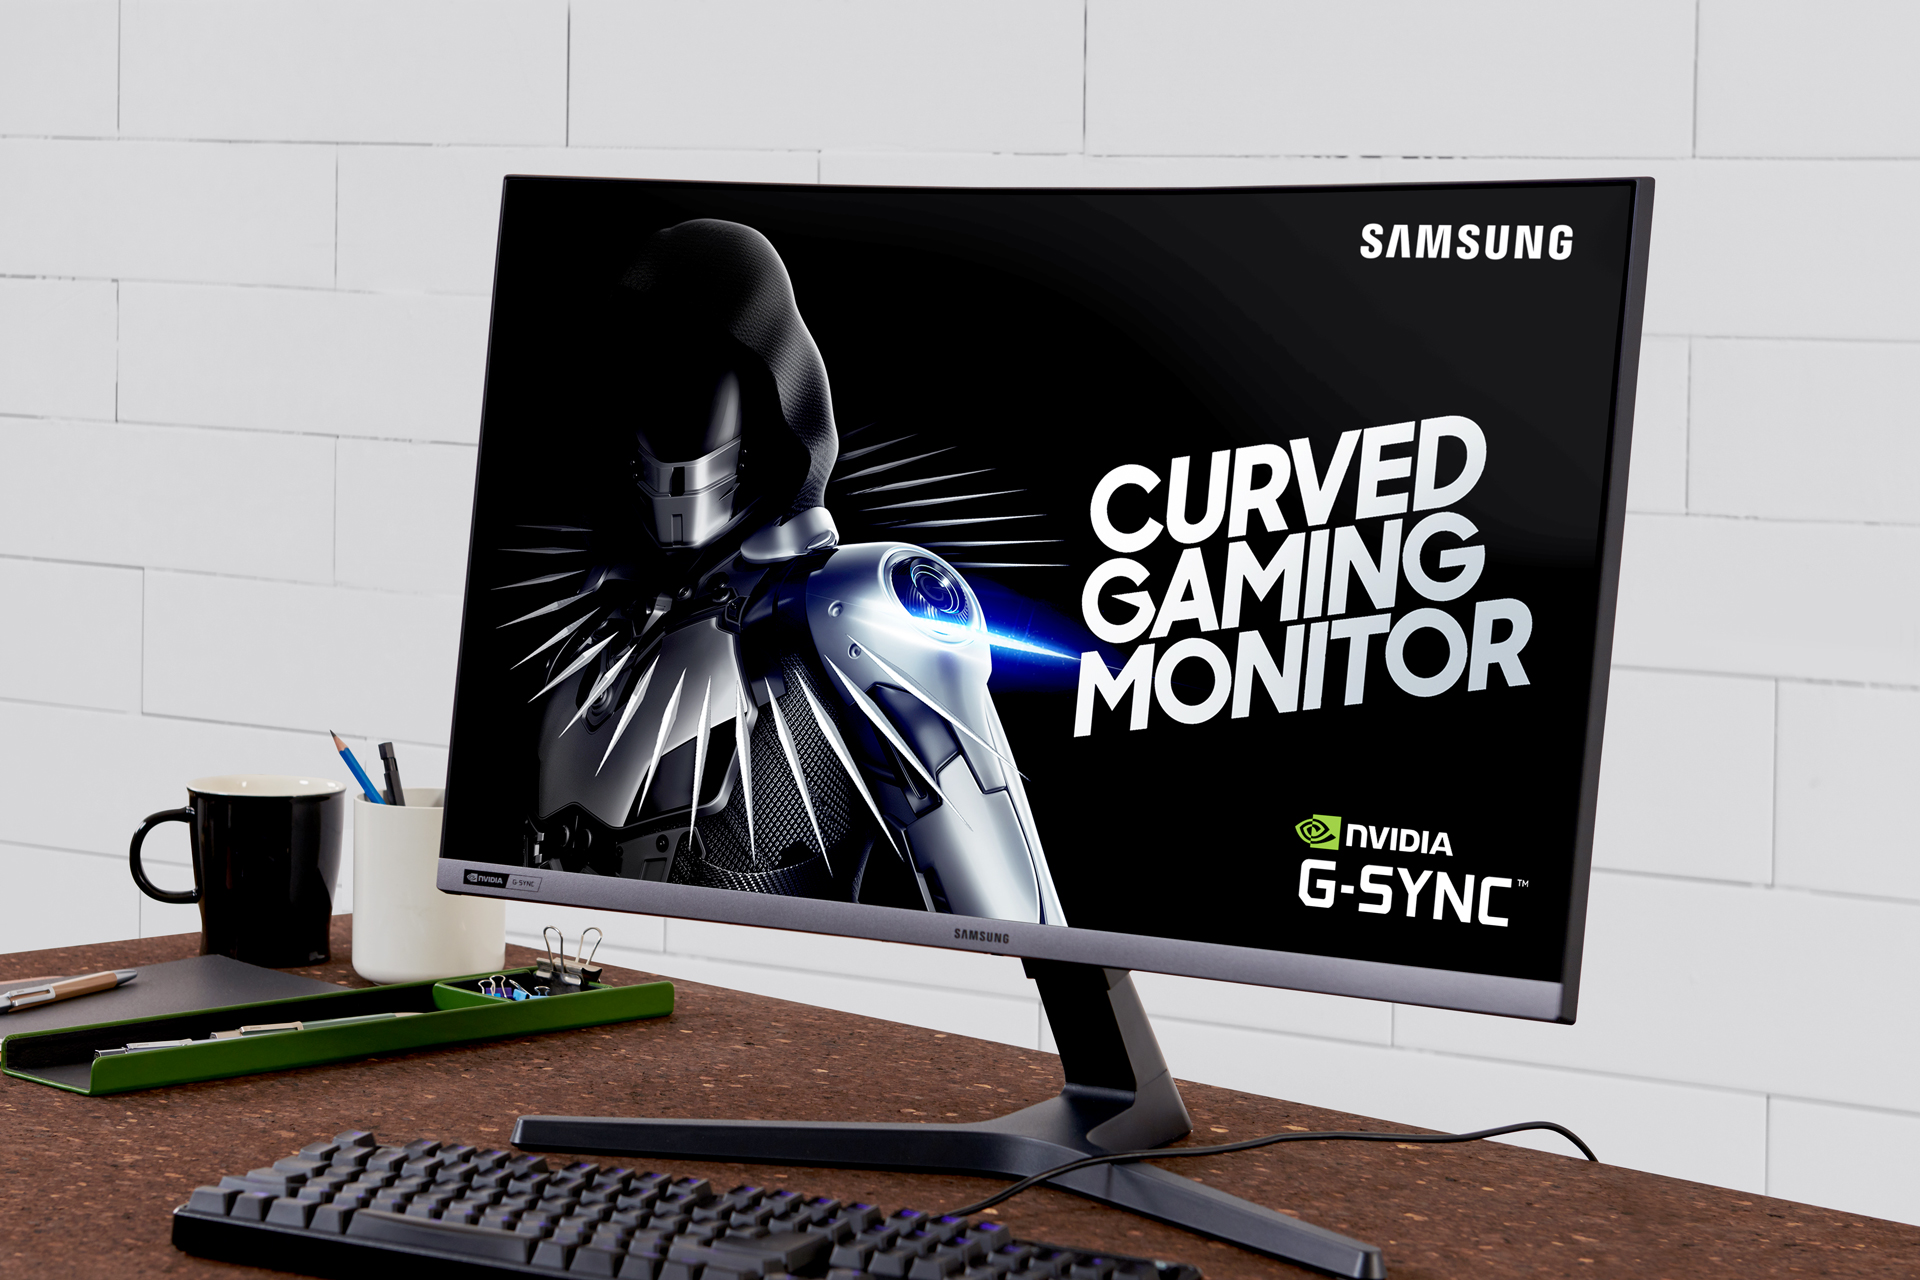 Samsung Curved Gaming Monitor CRG527